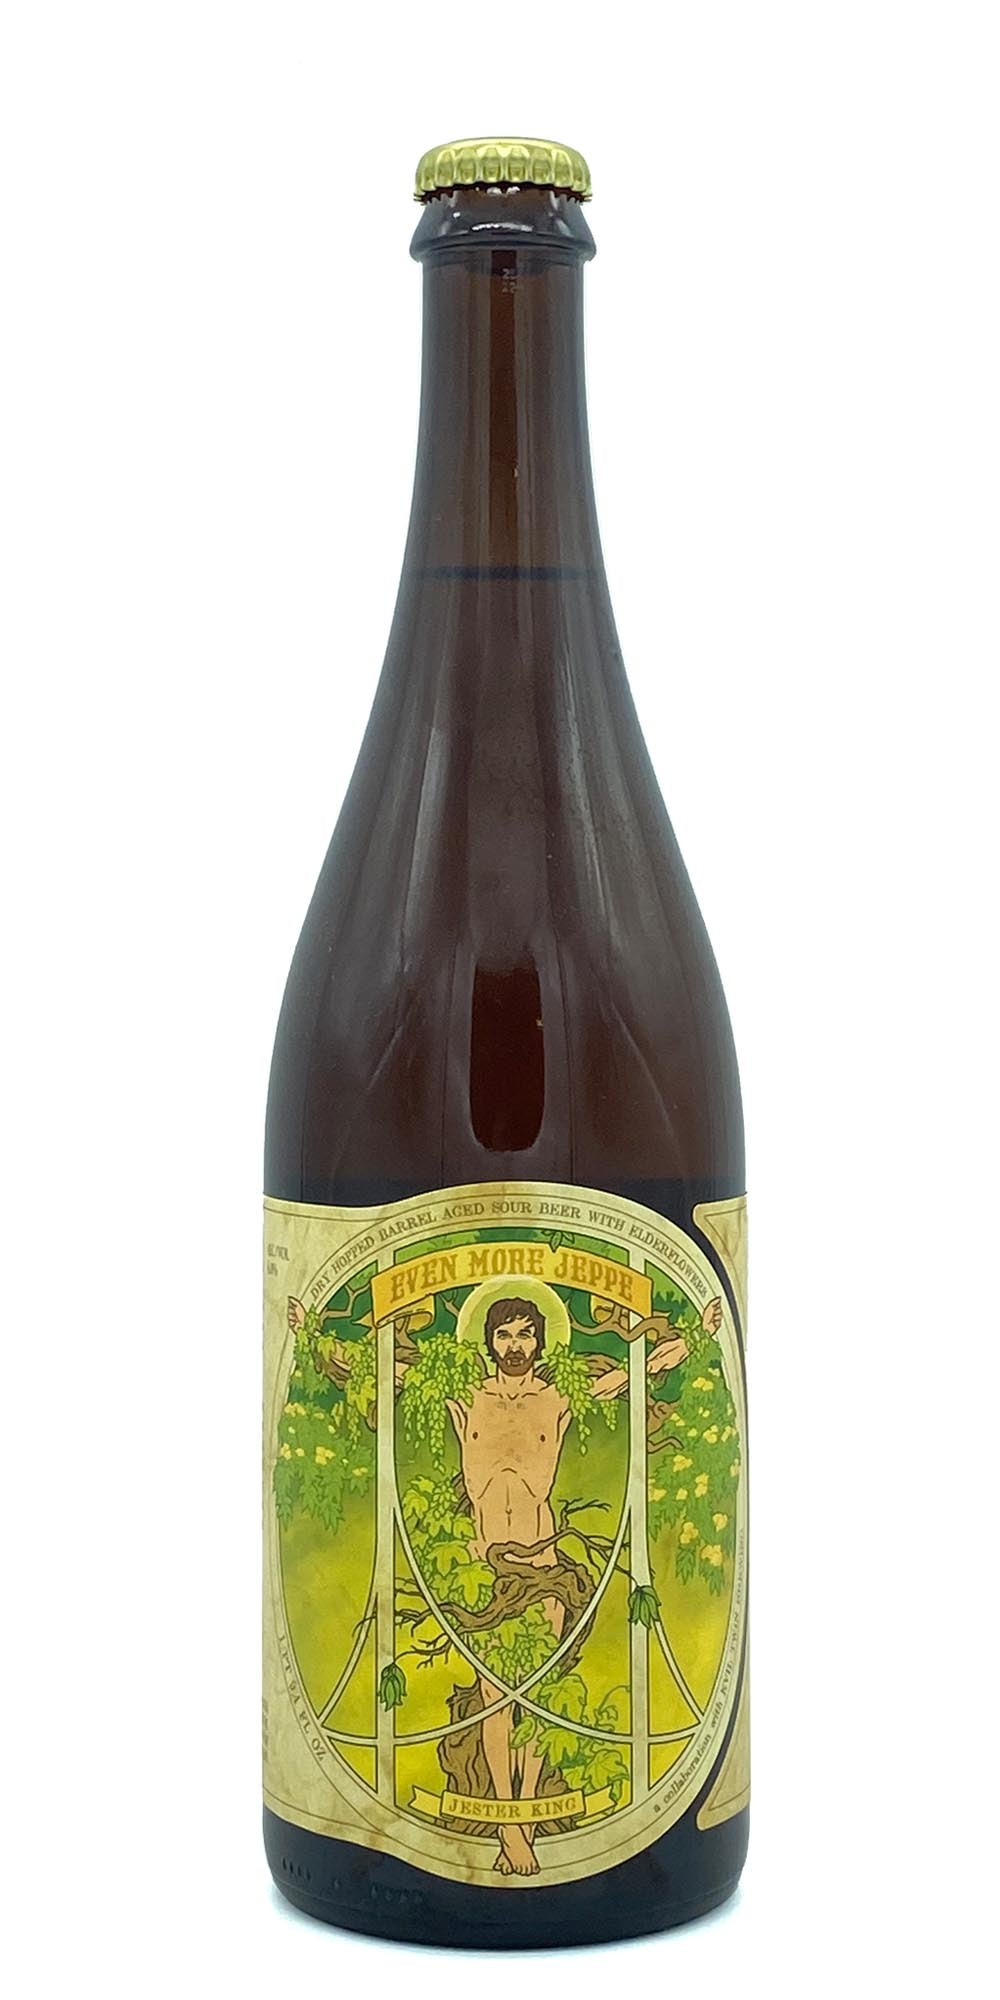 Jester King / Evil Twin Brewing - Even More Jeppe